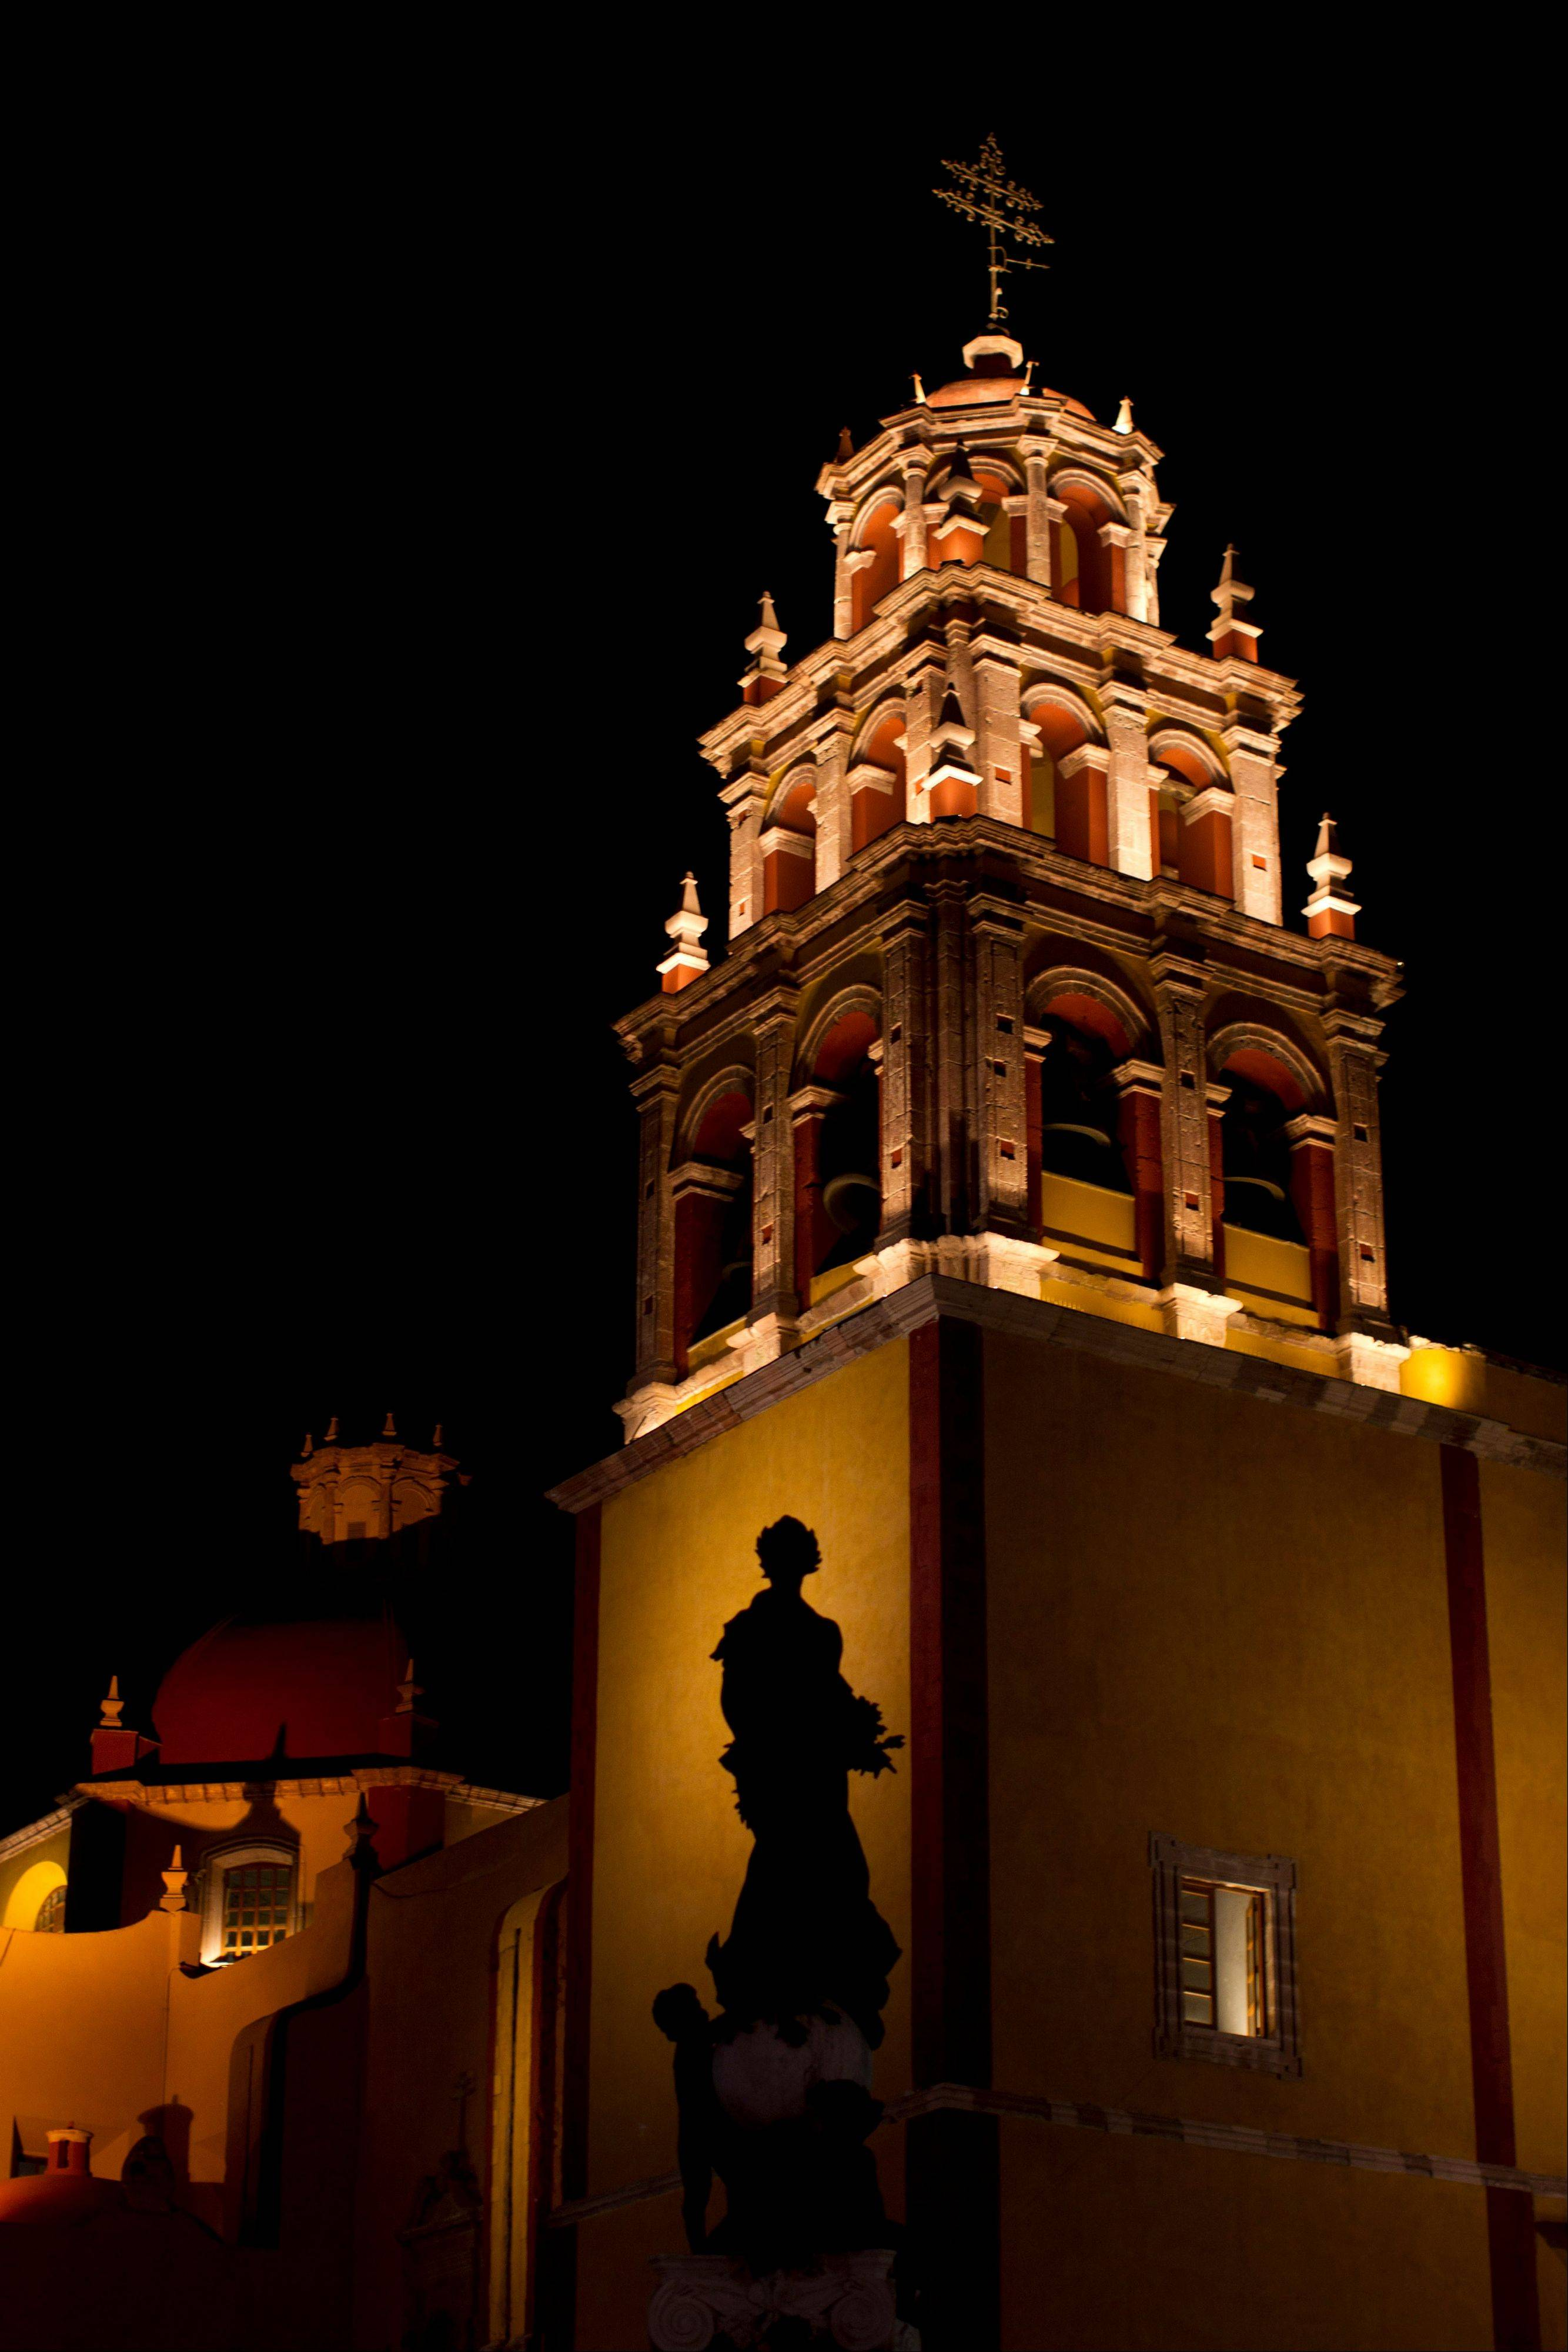 The Basilica Colegiata de Nuestra Se�ora de Guanajuato is lit at night in the colonial city of Guanajuato, Mexico. Guanajuato, where the pope will visit, is one of the most picturesque places in Mexico.